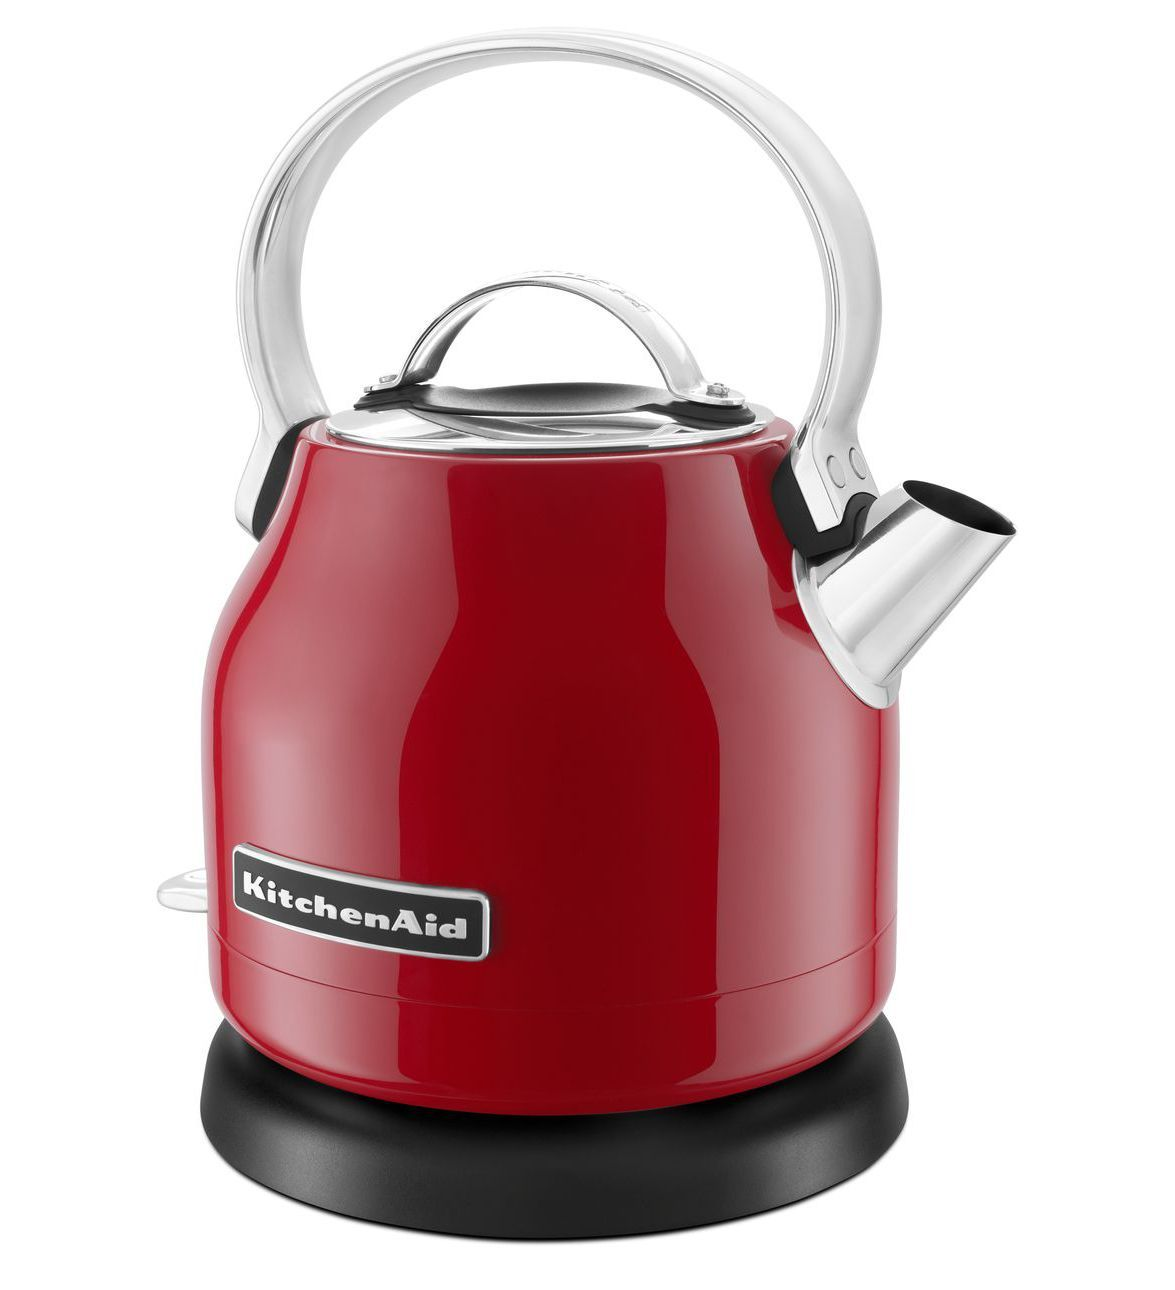 kitchenaid 4 1 2 quot red stainless steel 1 25l electric kettle empire red the kitchenaid 174 electric kettle is simple to use and offers 7224